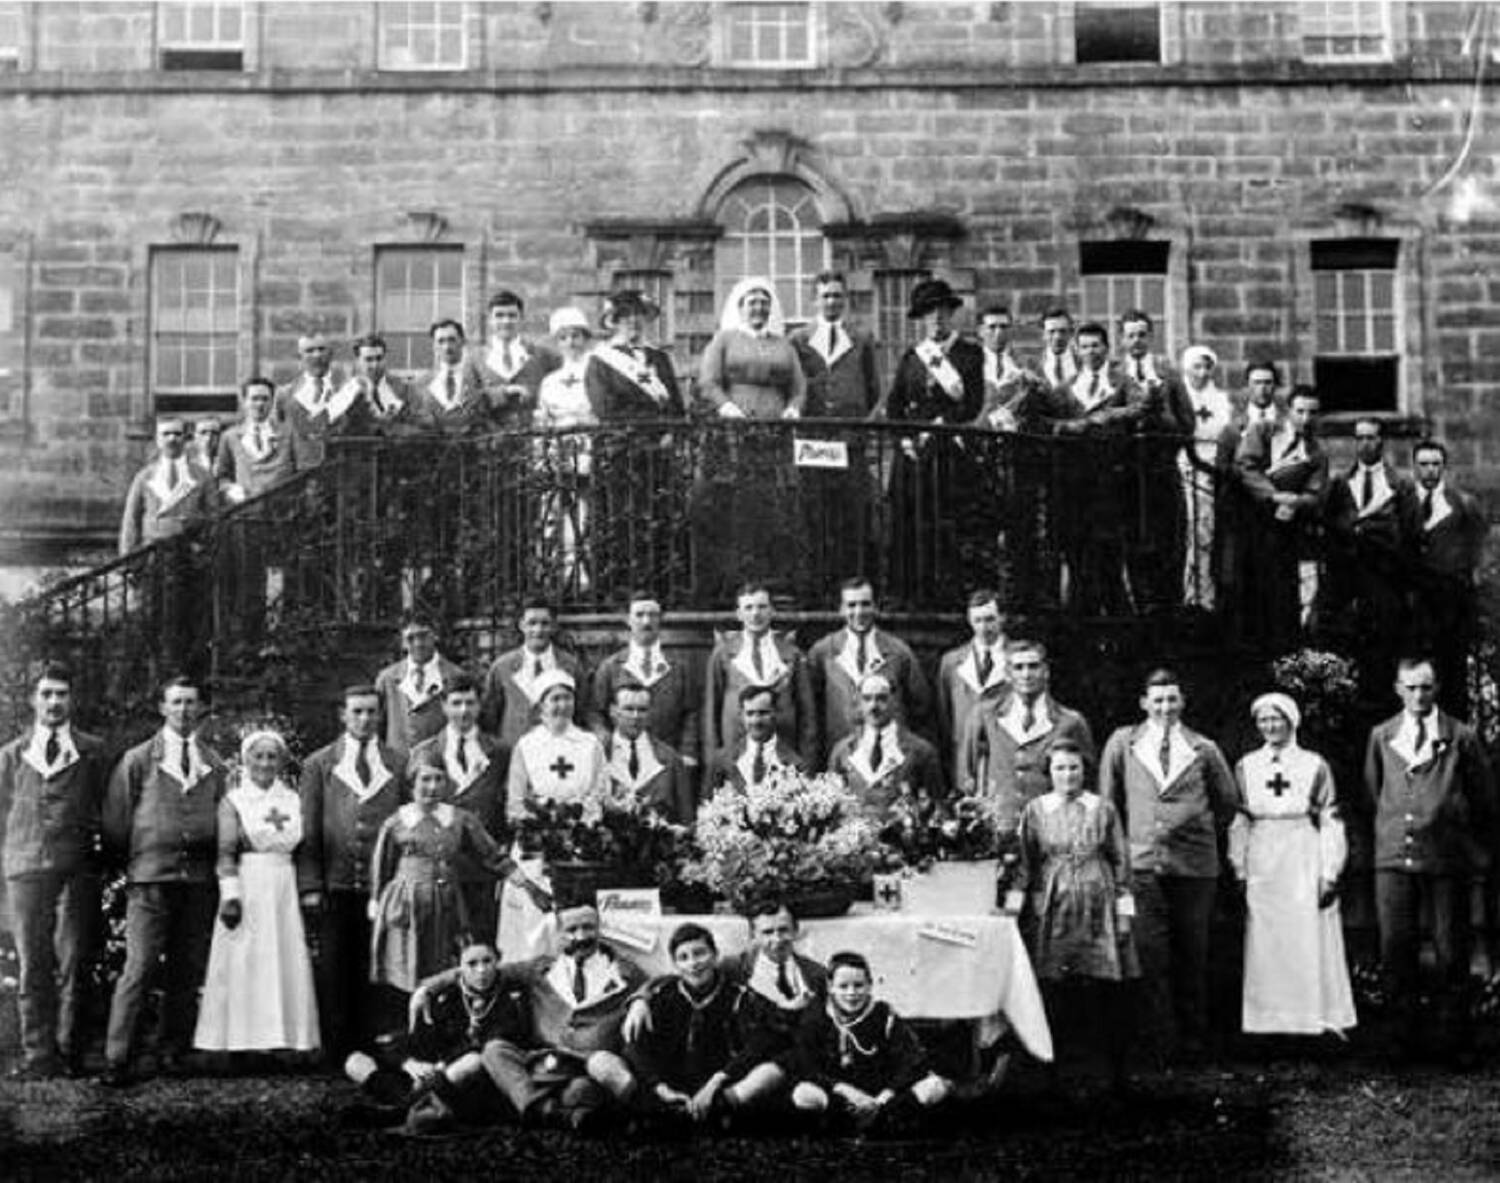 A black and white photograph of around 50 people standing on or around steps in front of a grand country house. It appears to be a fete or celebration of some kind as all are smartly dressed. Nurses are in uniform and men wear jackets and ties.